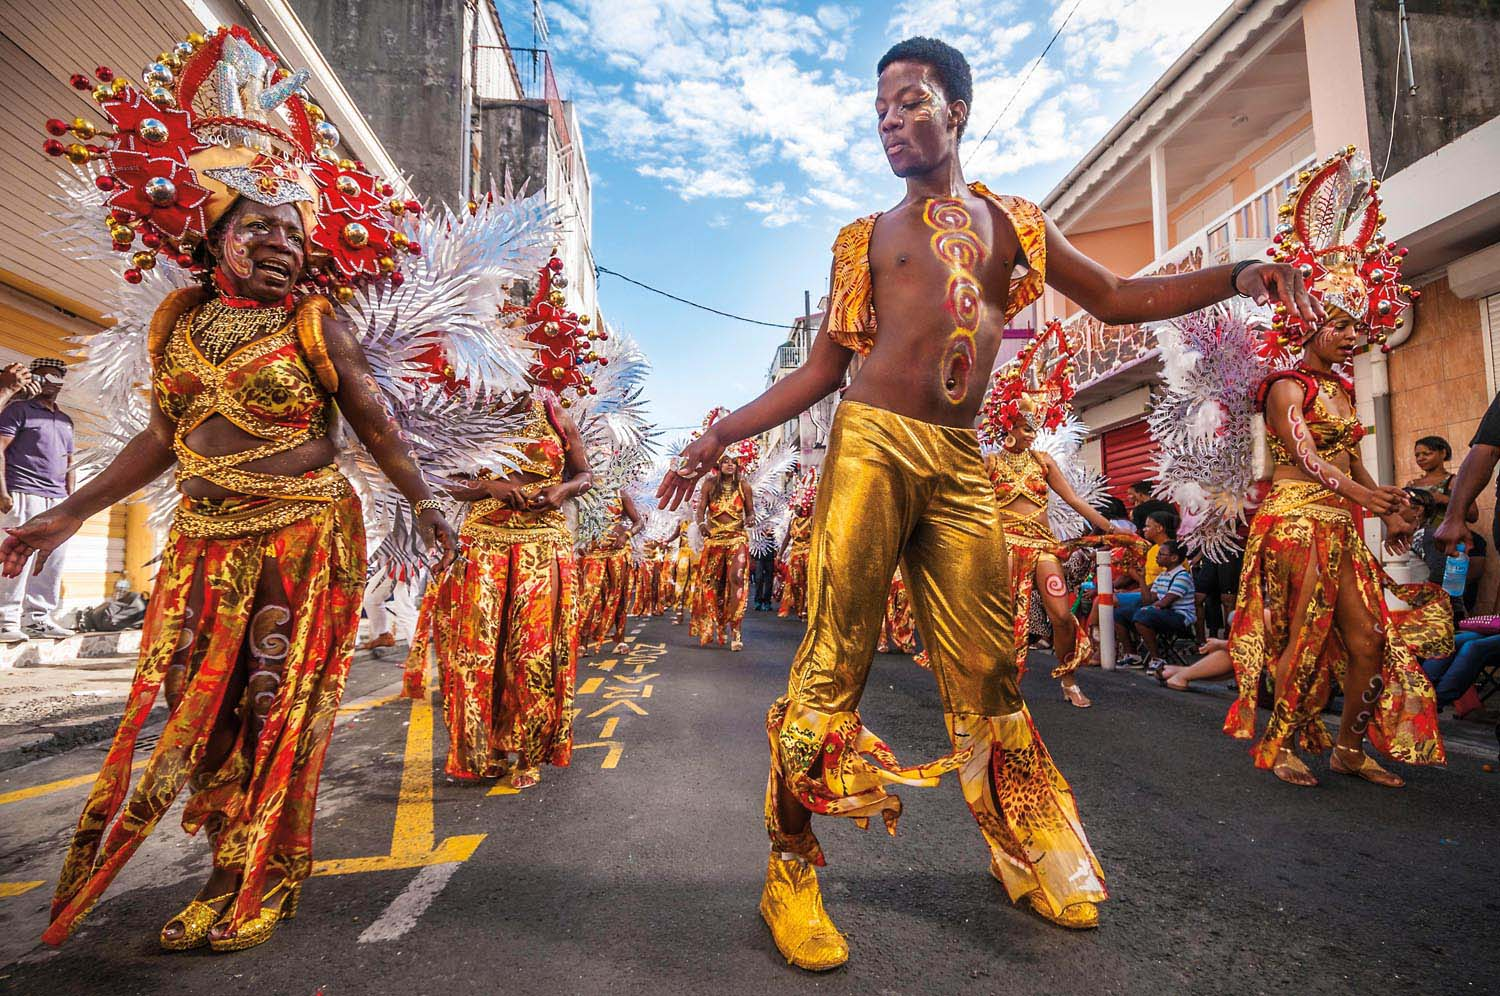 Carnival in Guadeloupe. Photo by Hemis/Alamy Stock Photo